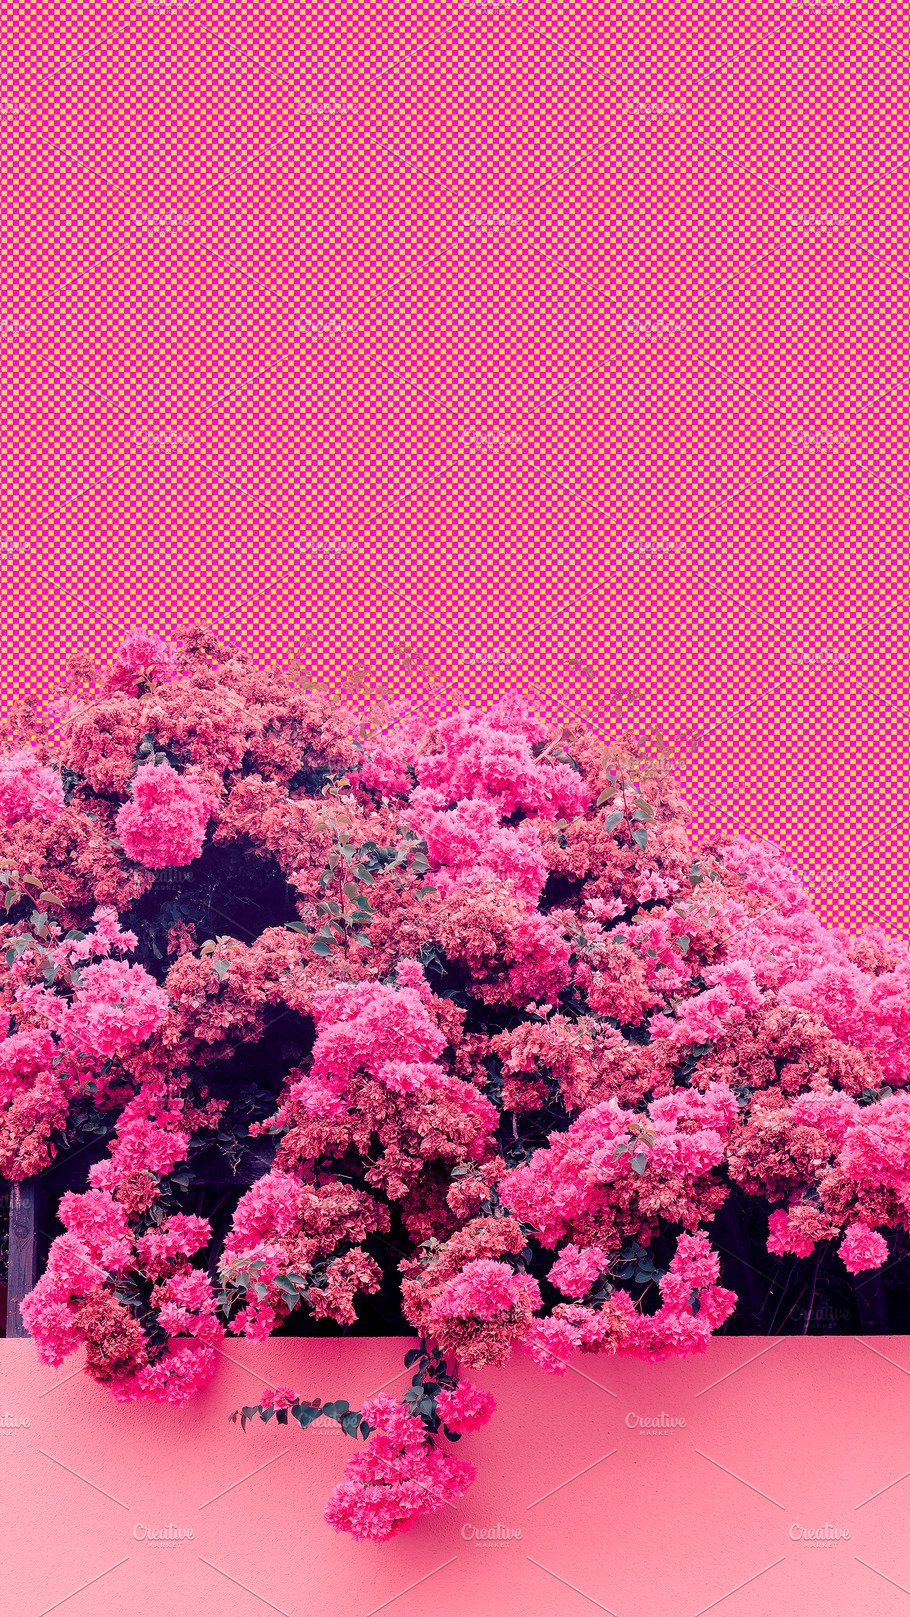 Aesthetic Collage Wallpaper Pink B High Quality Nature Stock